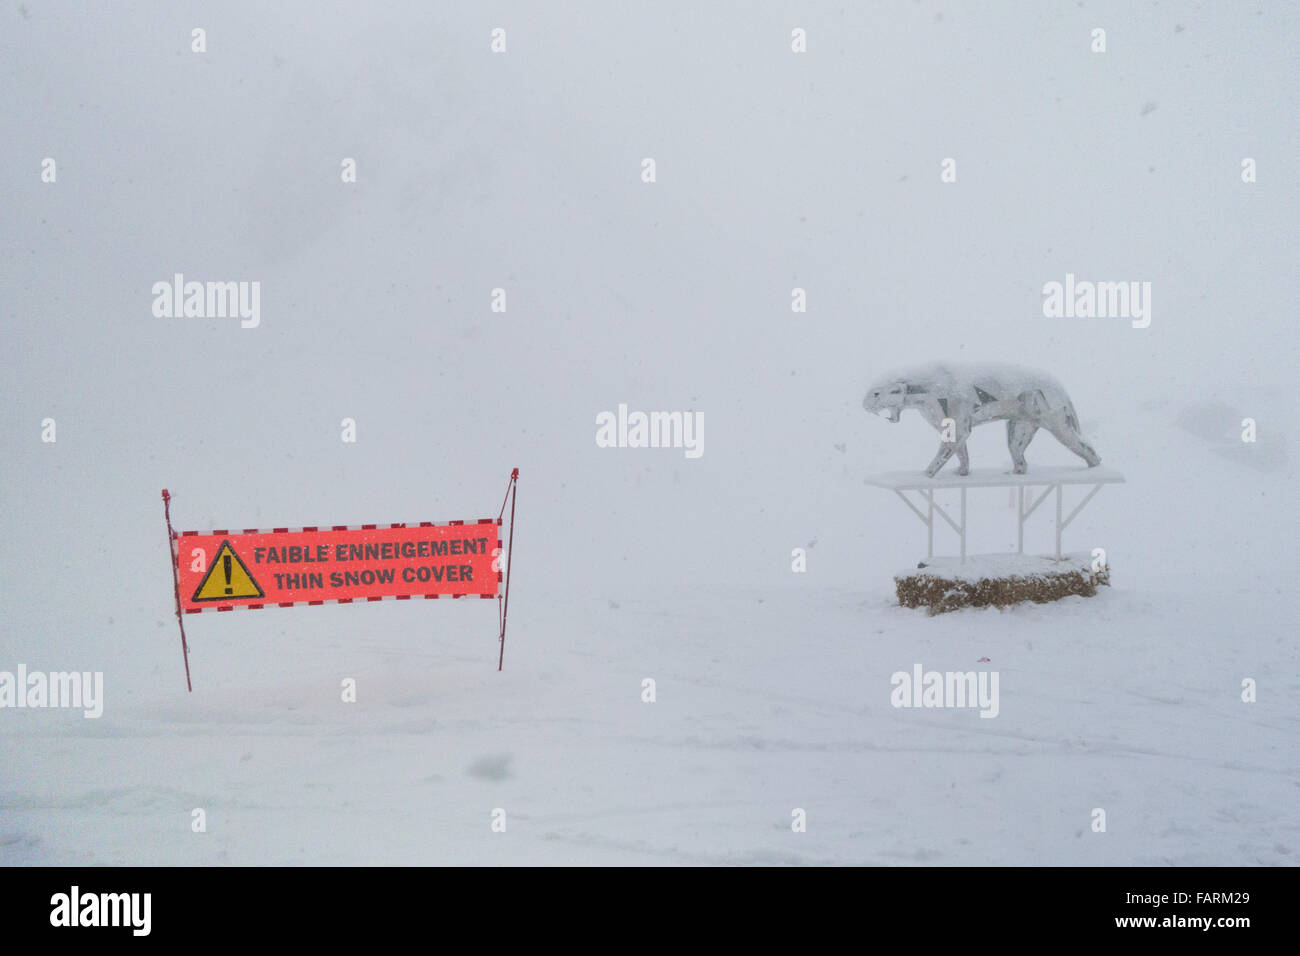 Courchevel, France - thin snow cover sign next to Orlinski summit sculpture in much needed falling snow - Stock Image